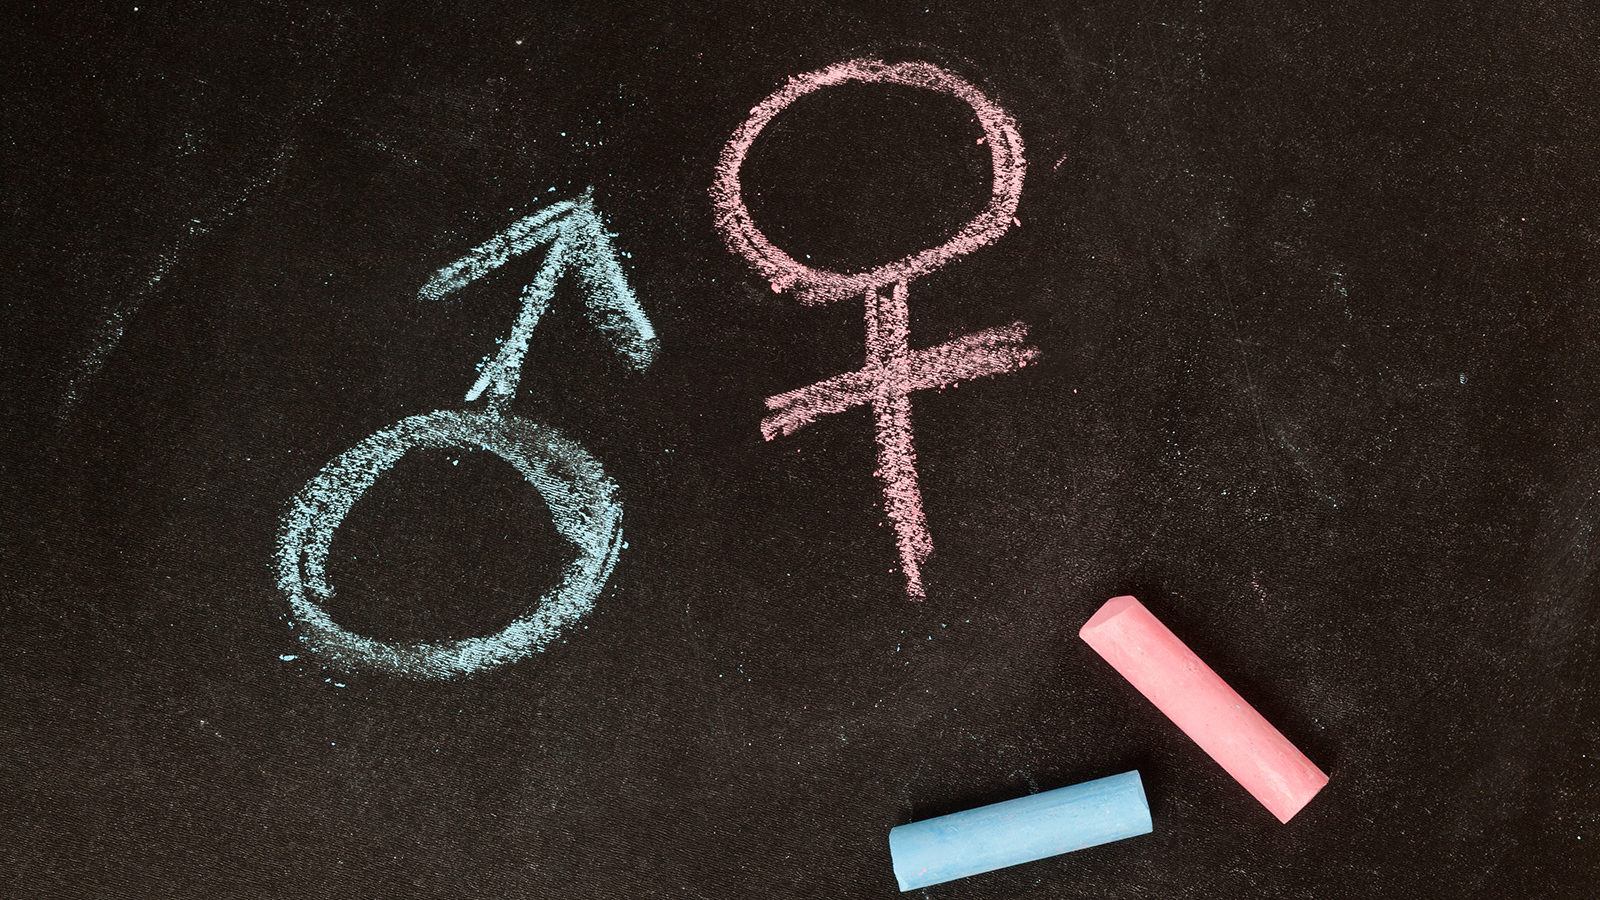 Blog Call For Urgent Statutory Reform Regarding Children With Gender Dysphoria